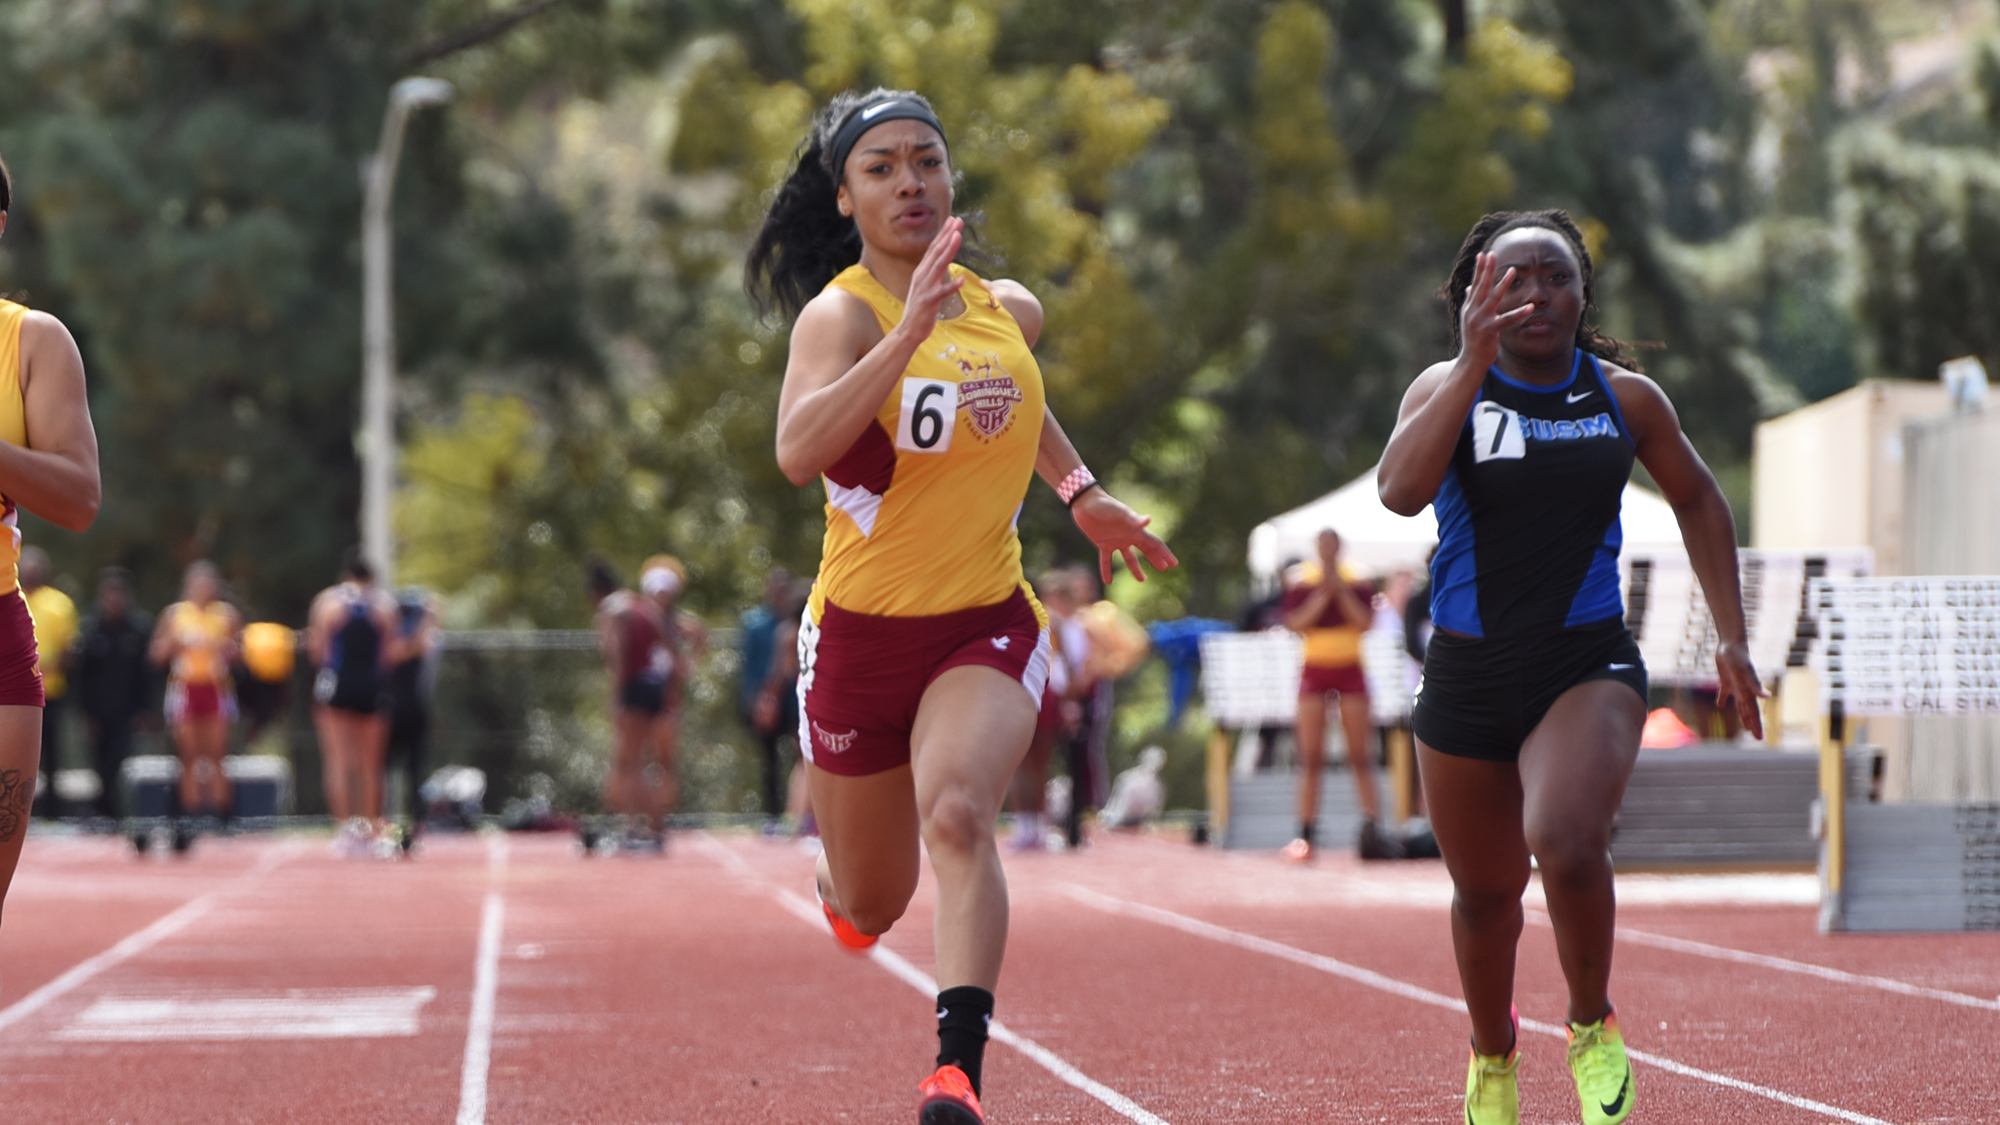 Mariah Walker Wins 100-Meter Sprint for CSUDH at SF State Distance Carnival